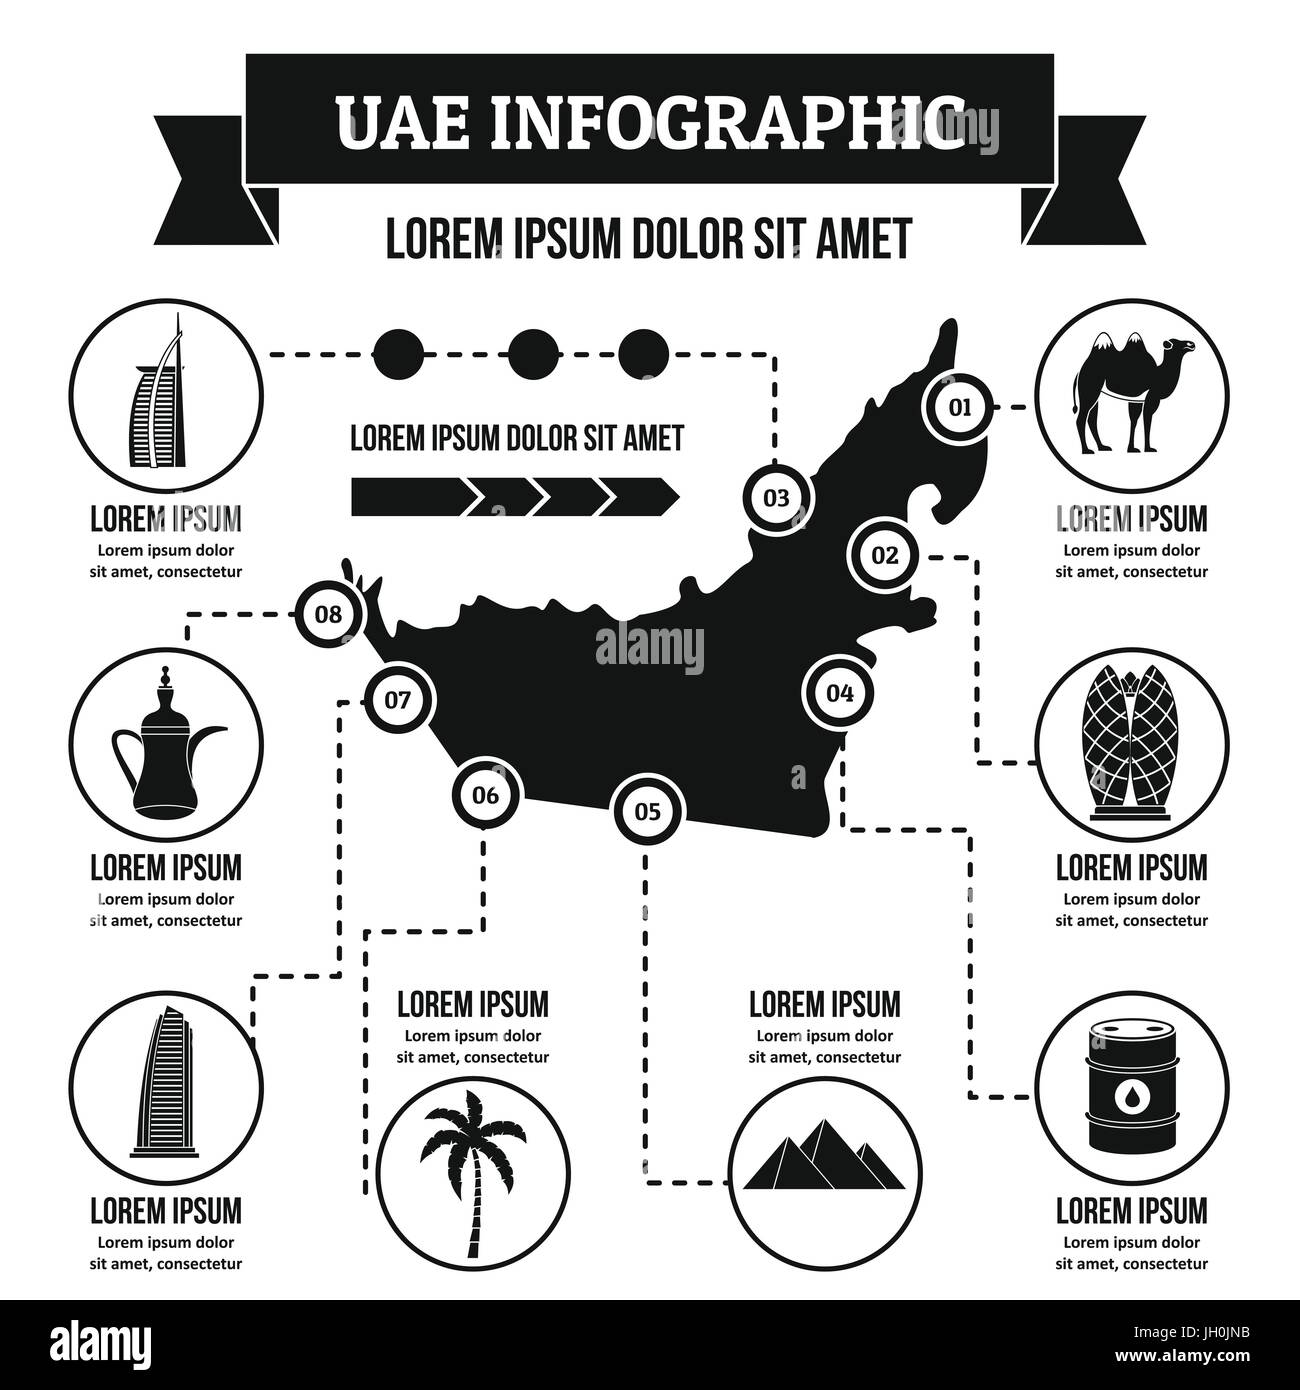 UAE infographic concept, simple style - Stock Image